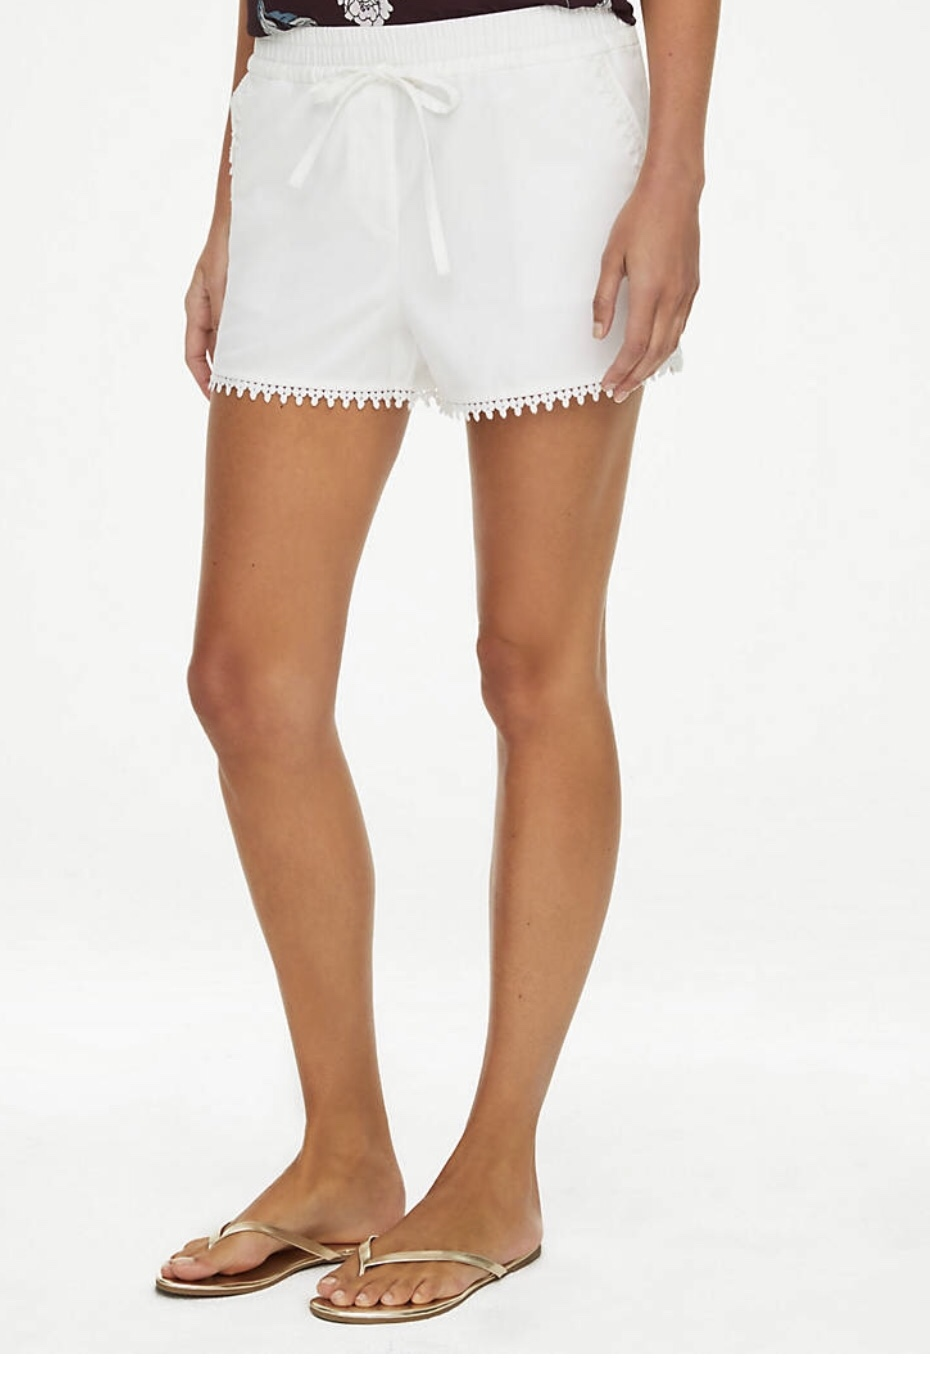 lace trim white shorts